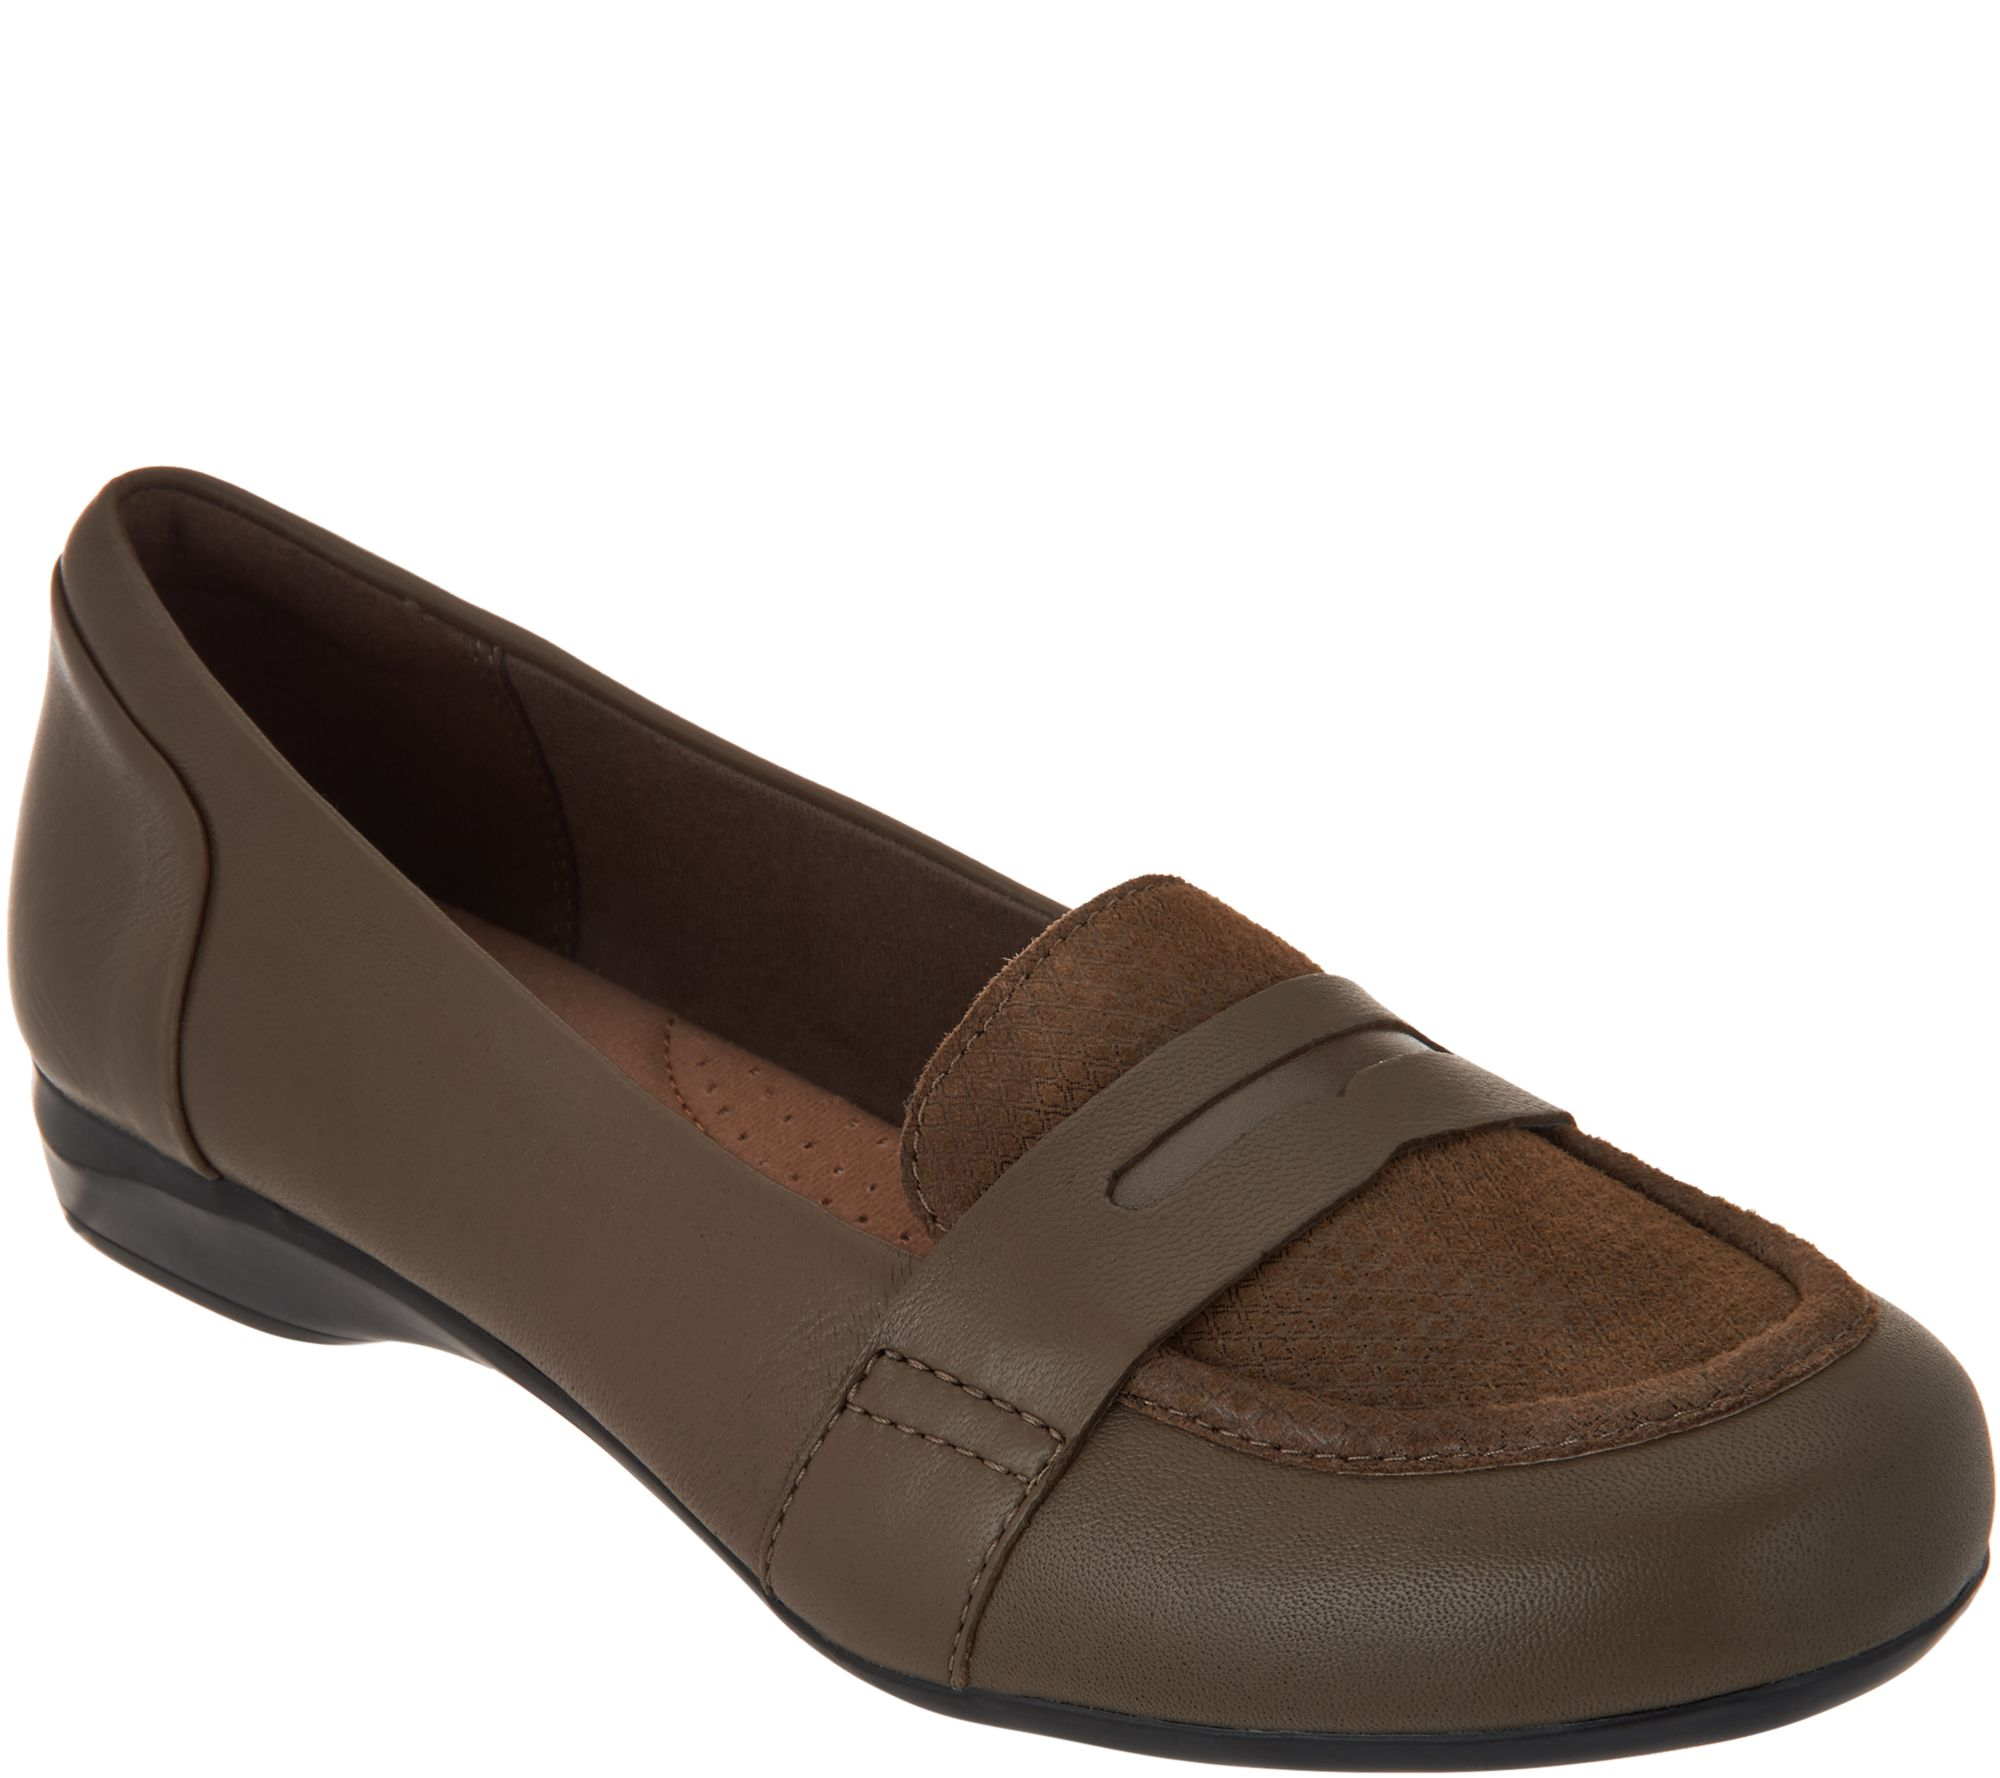 504ccc926 Clarks Leather Slip on Loafers - Kinzie Willow - Page 1 — QVC.com